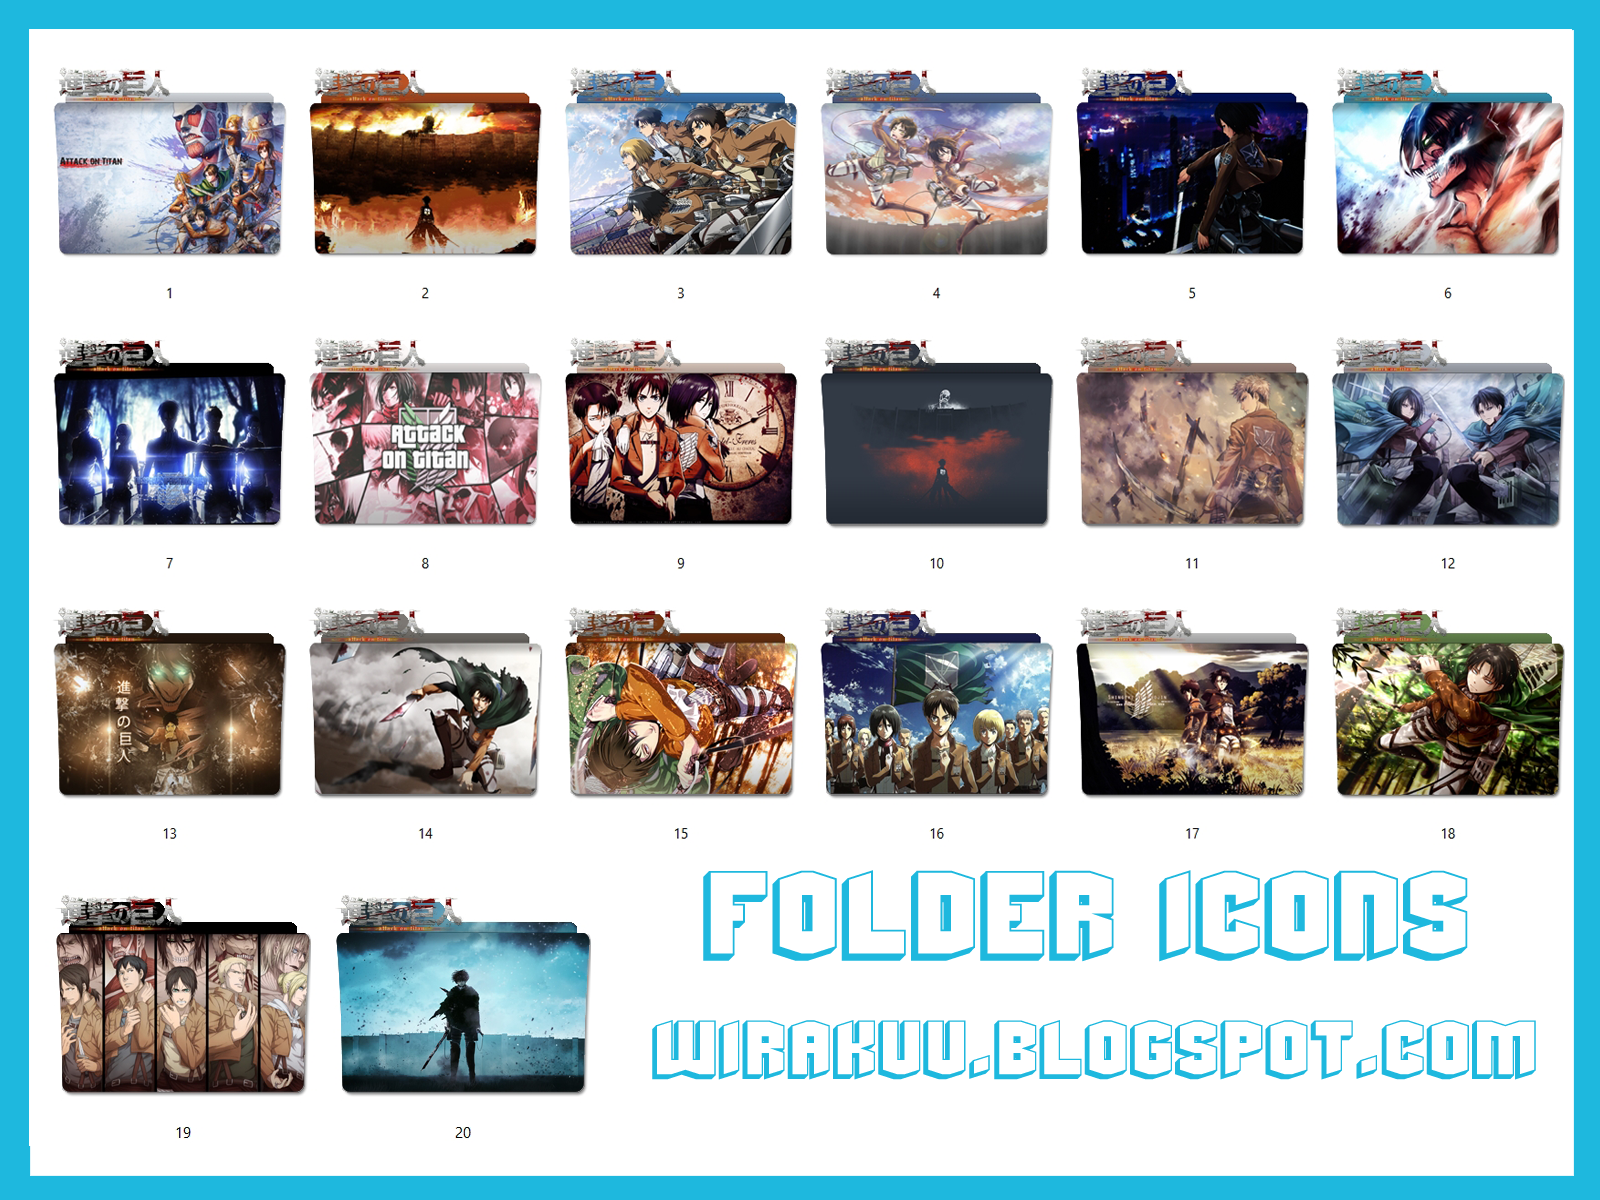 20 Folder Icons Anime Shingeki no Kyojin - Attack on Titans Pack 2 (Windows 7, 8, 10)